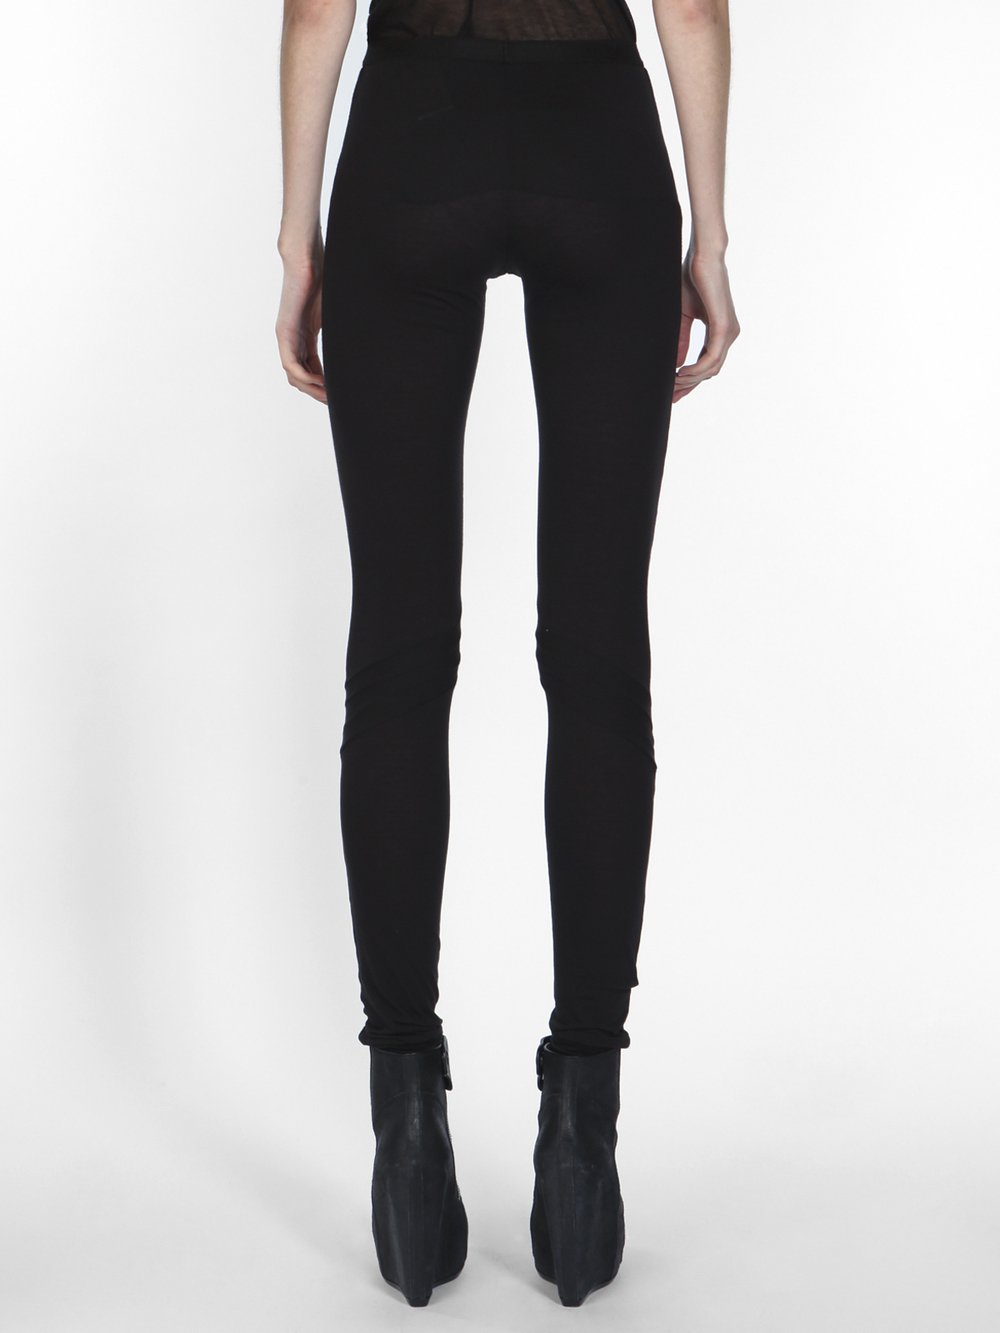 RICK OWENS LILIES - TOPSTITCHED LEGGINGS